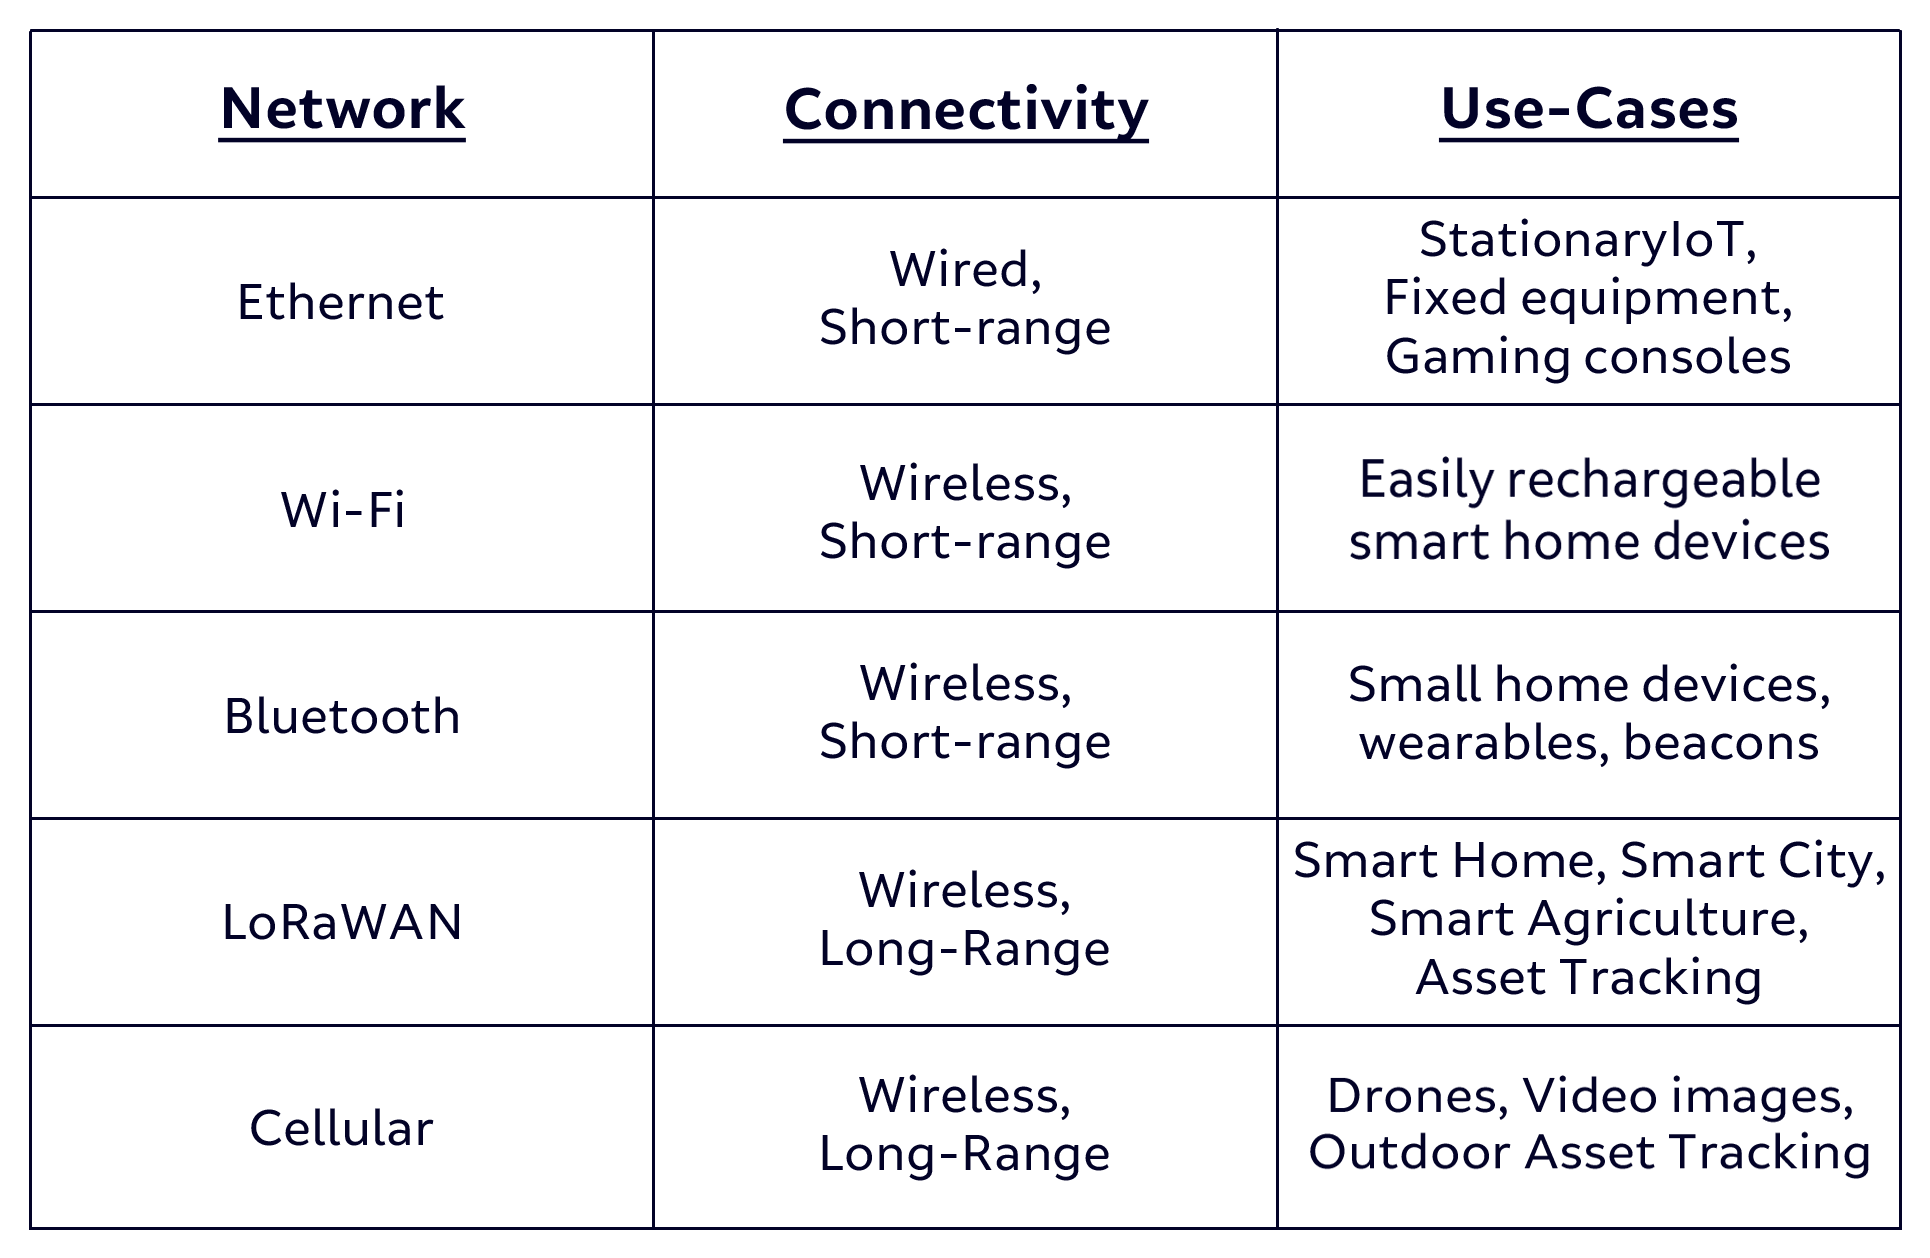 A chart showing network, connectivity, and use cases